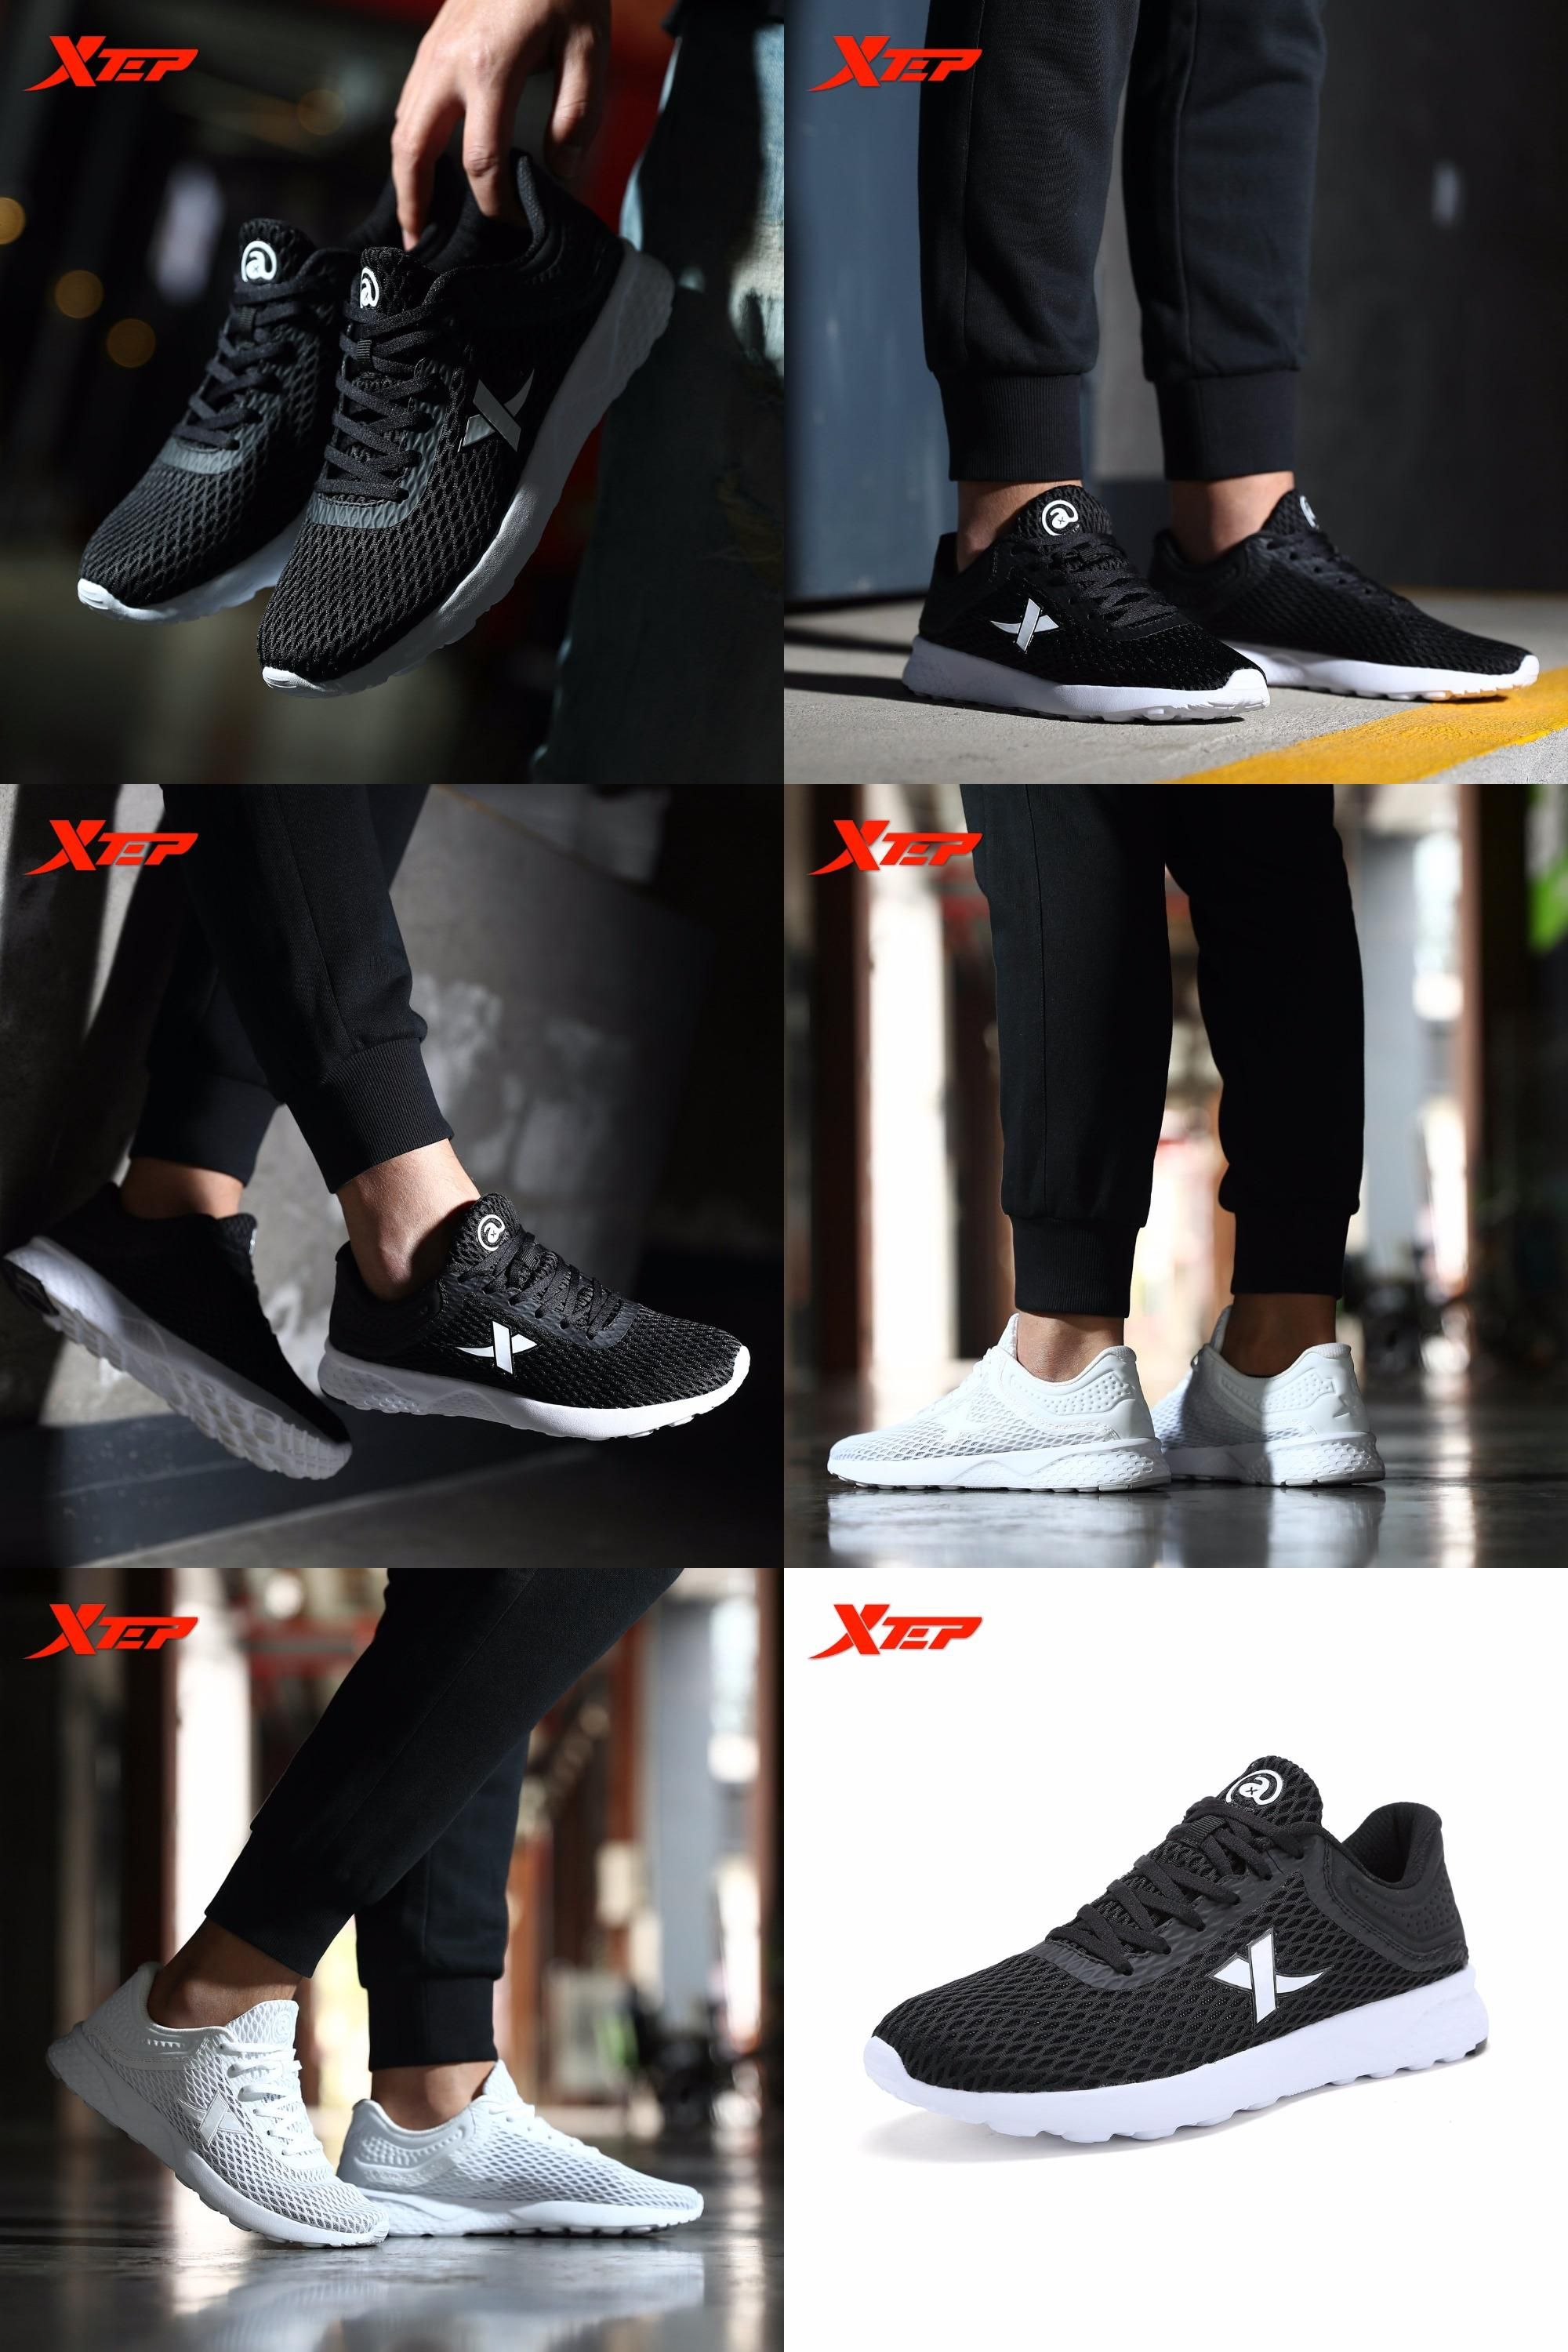 Visit to Buy] XTEP Brand Men's LightWeight Sports Trainers